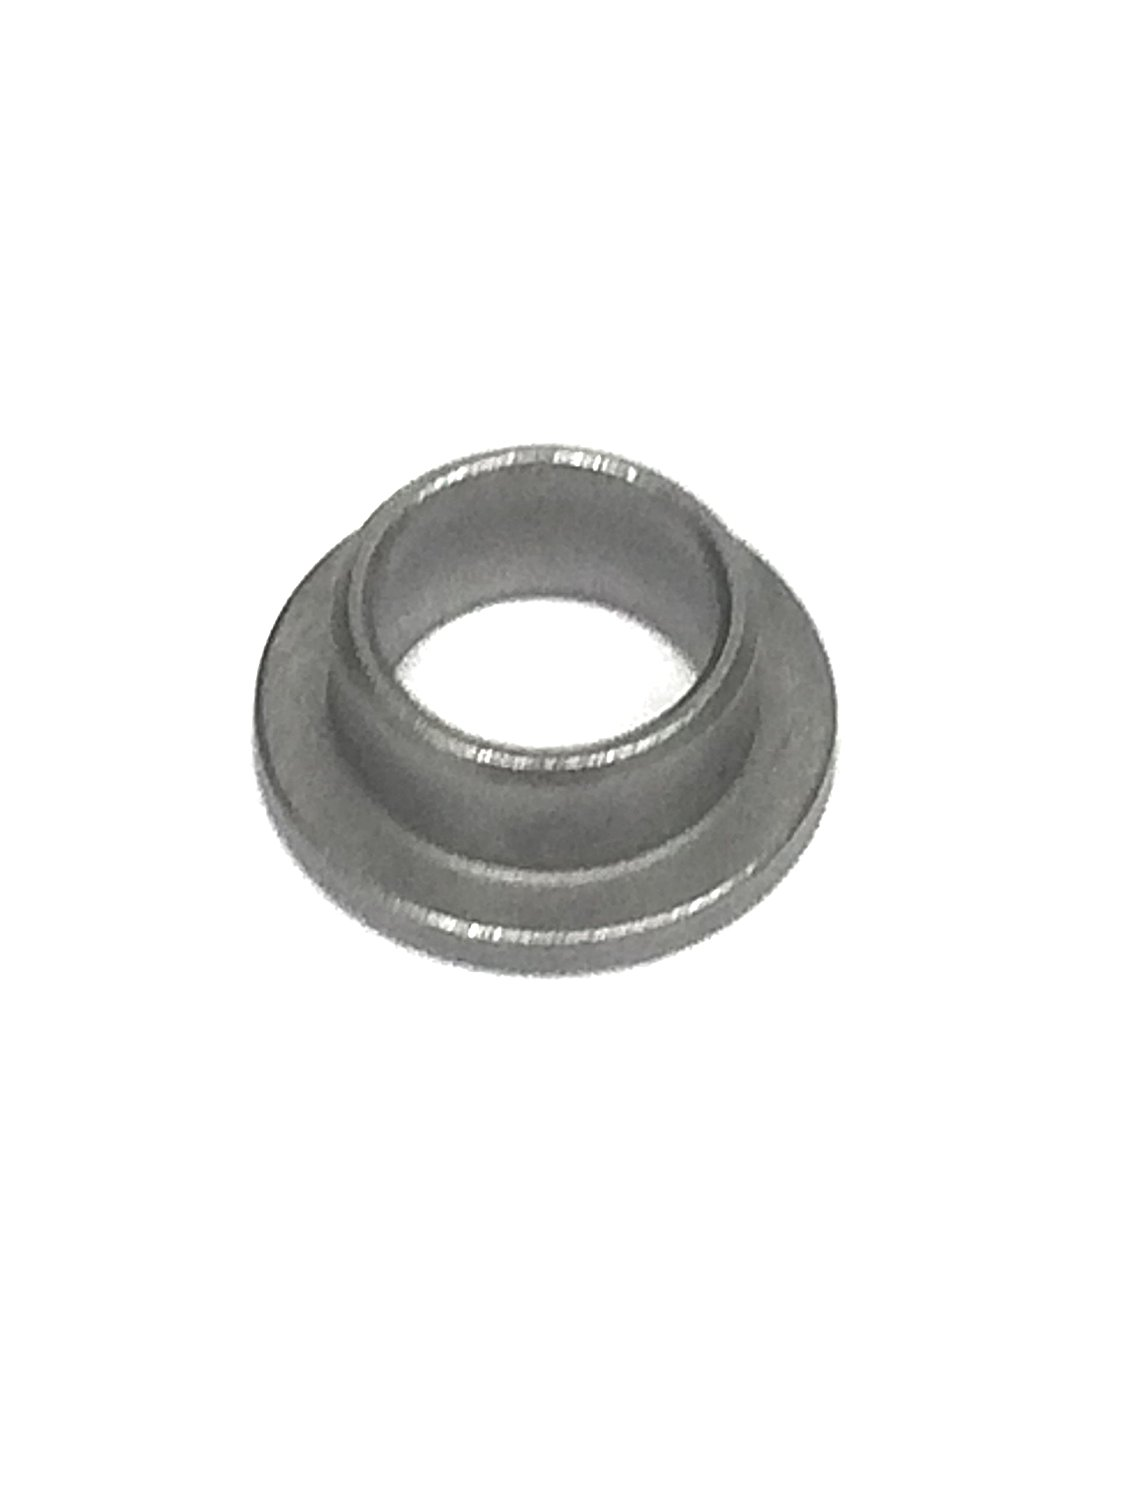 678411 Lippert Components Trailer Landing Gear Crank Handle Bushing